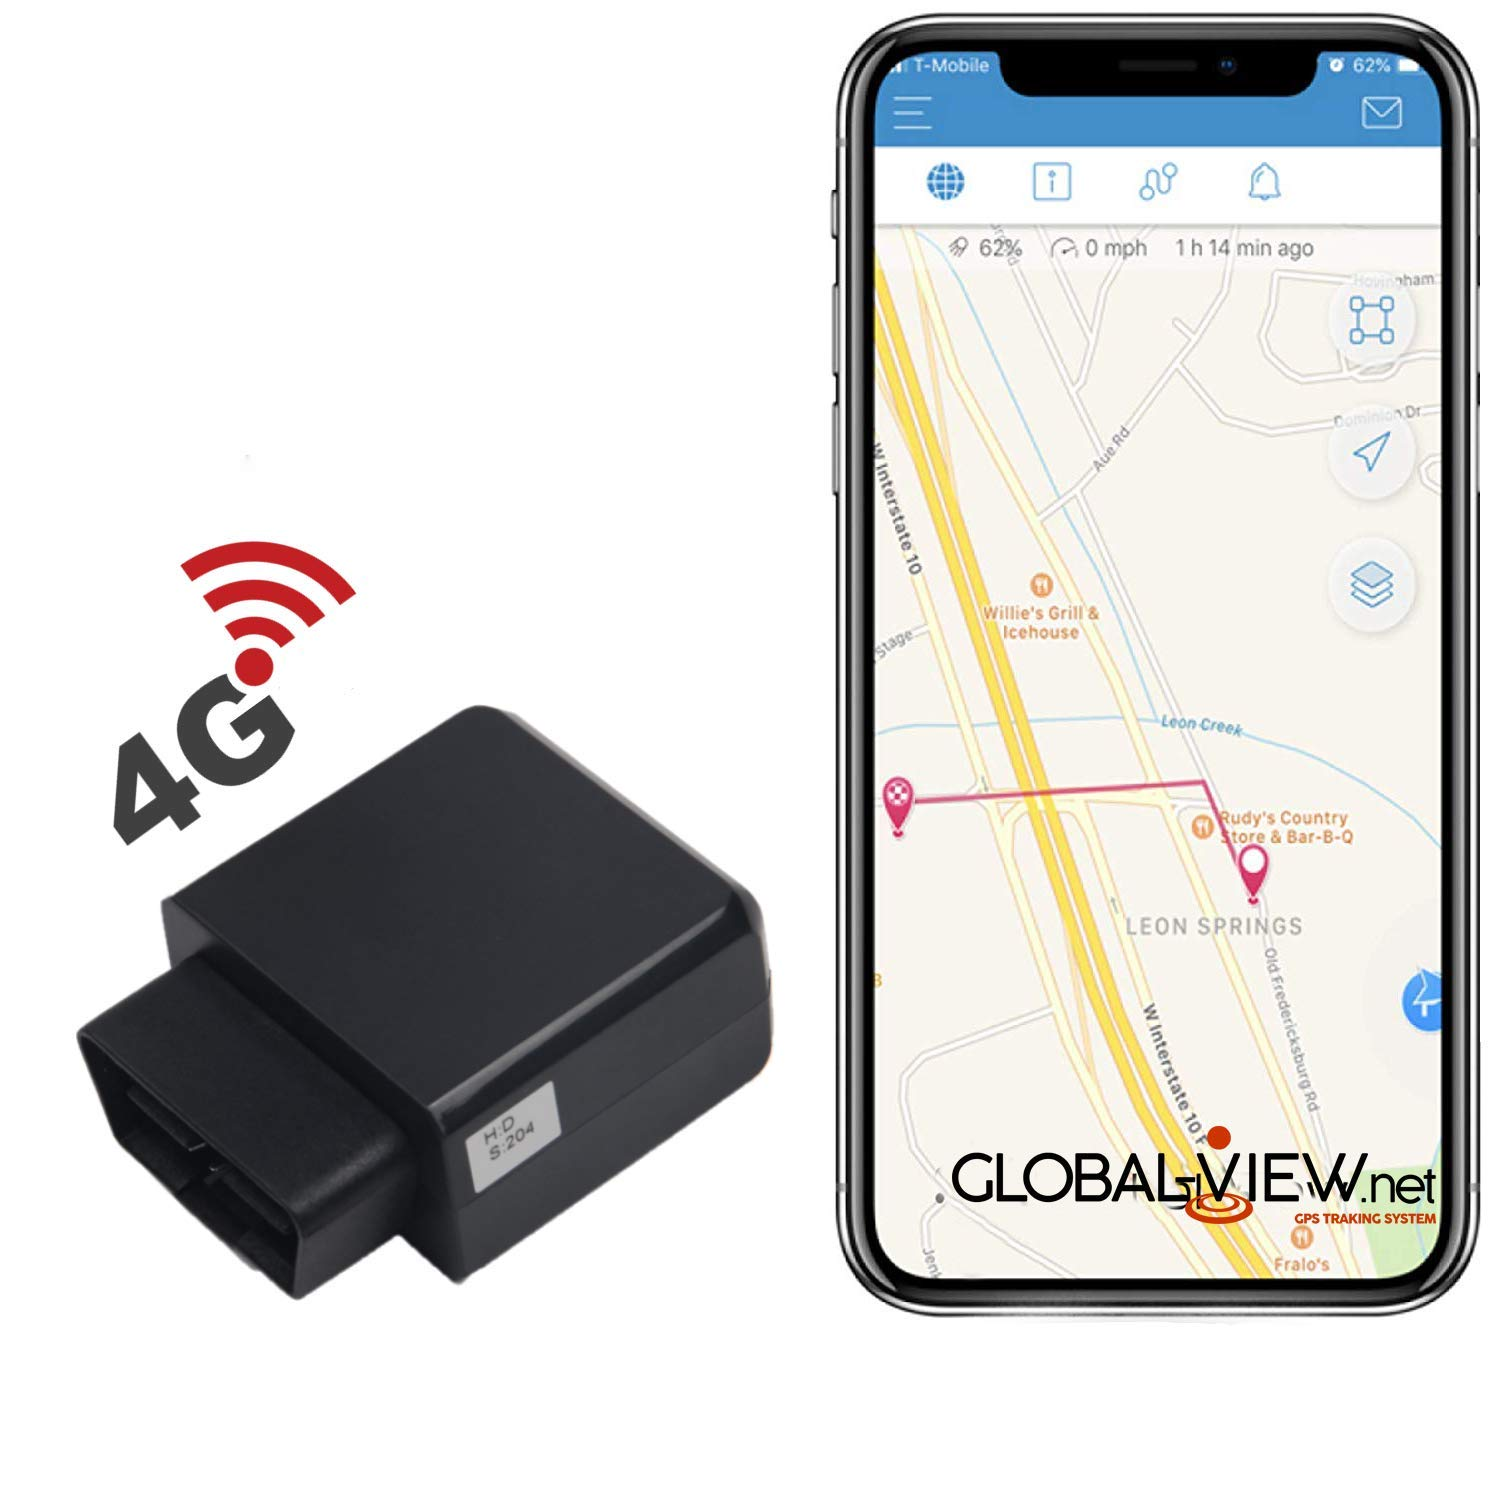 Gps Tracking For Cars >> Amazon Com Global View Net Gps Vehicle Tracking Device And